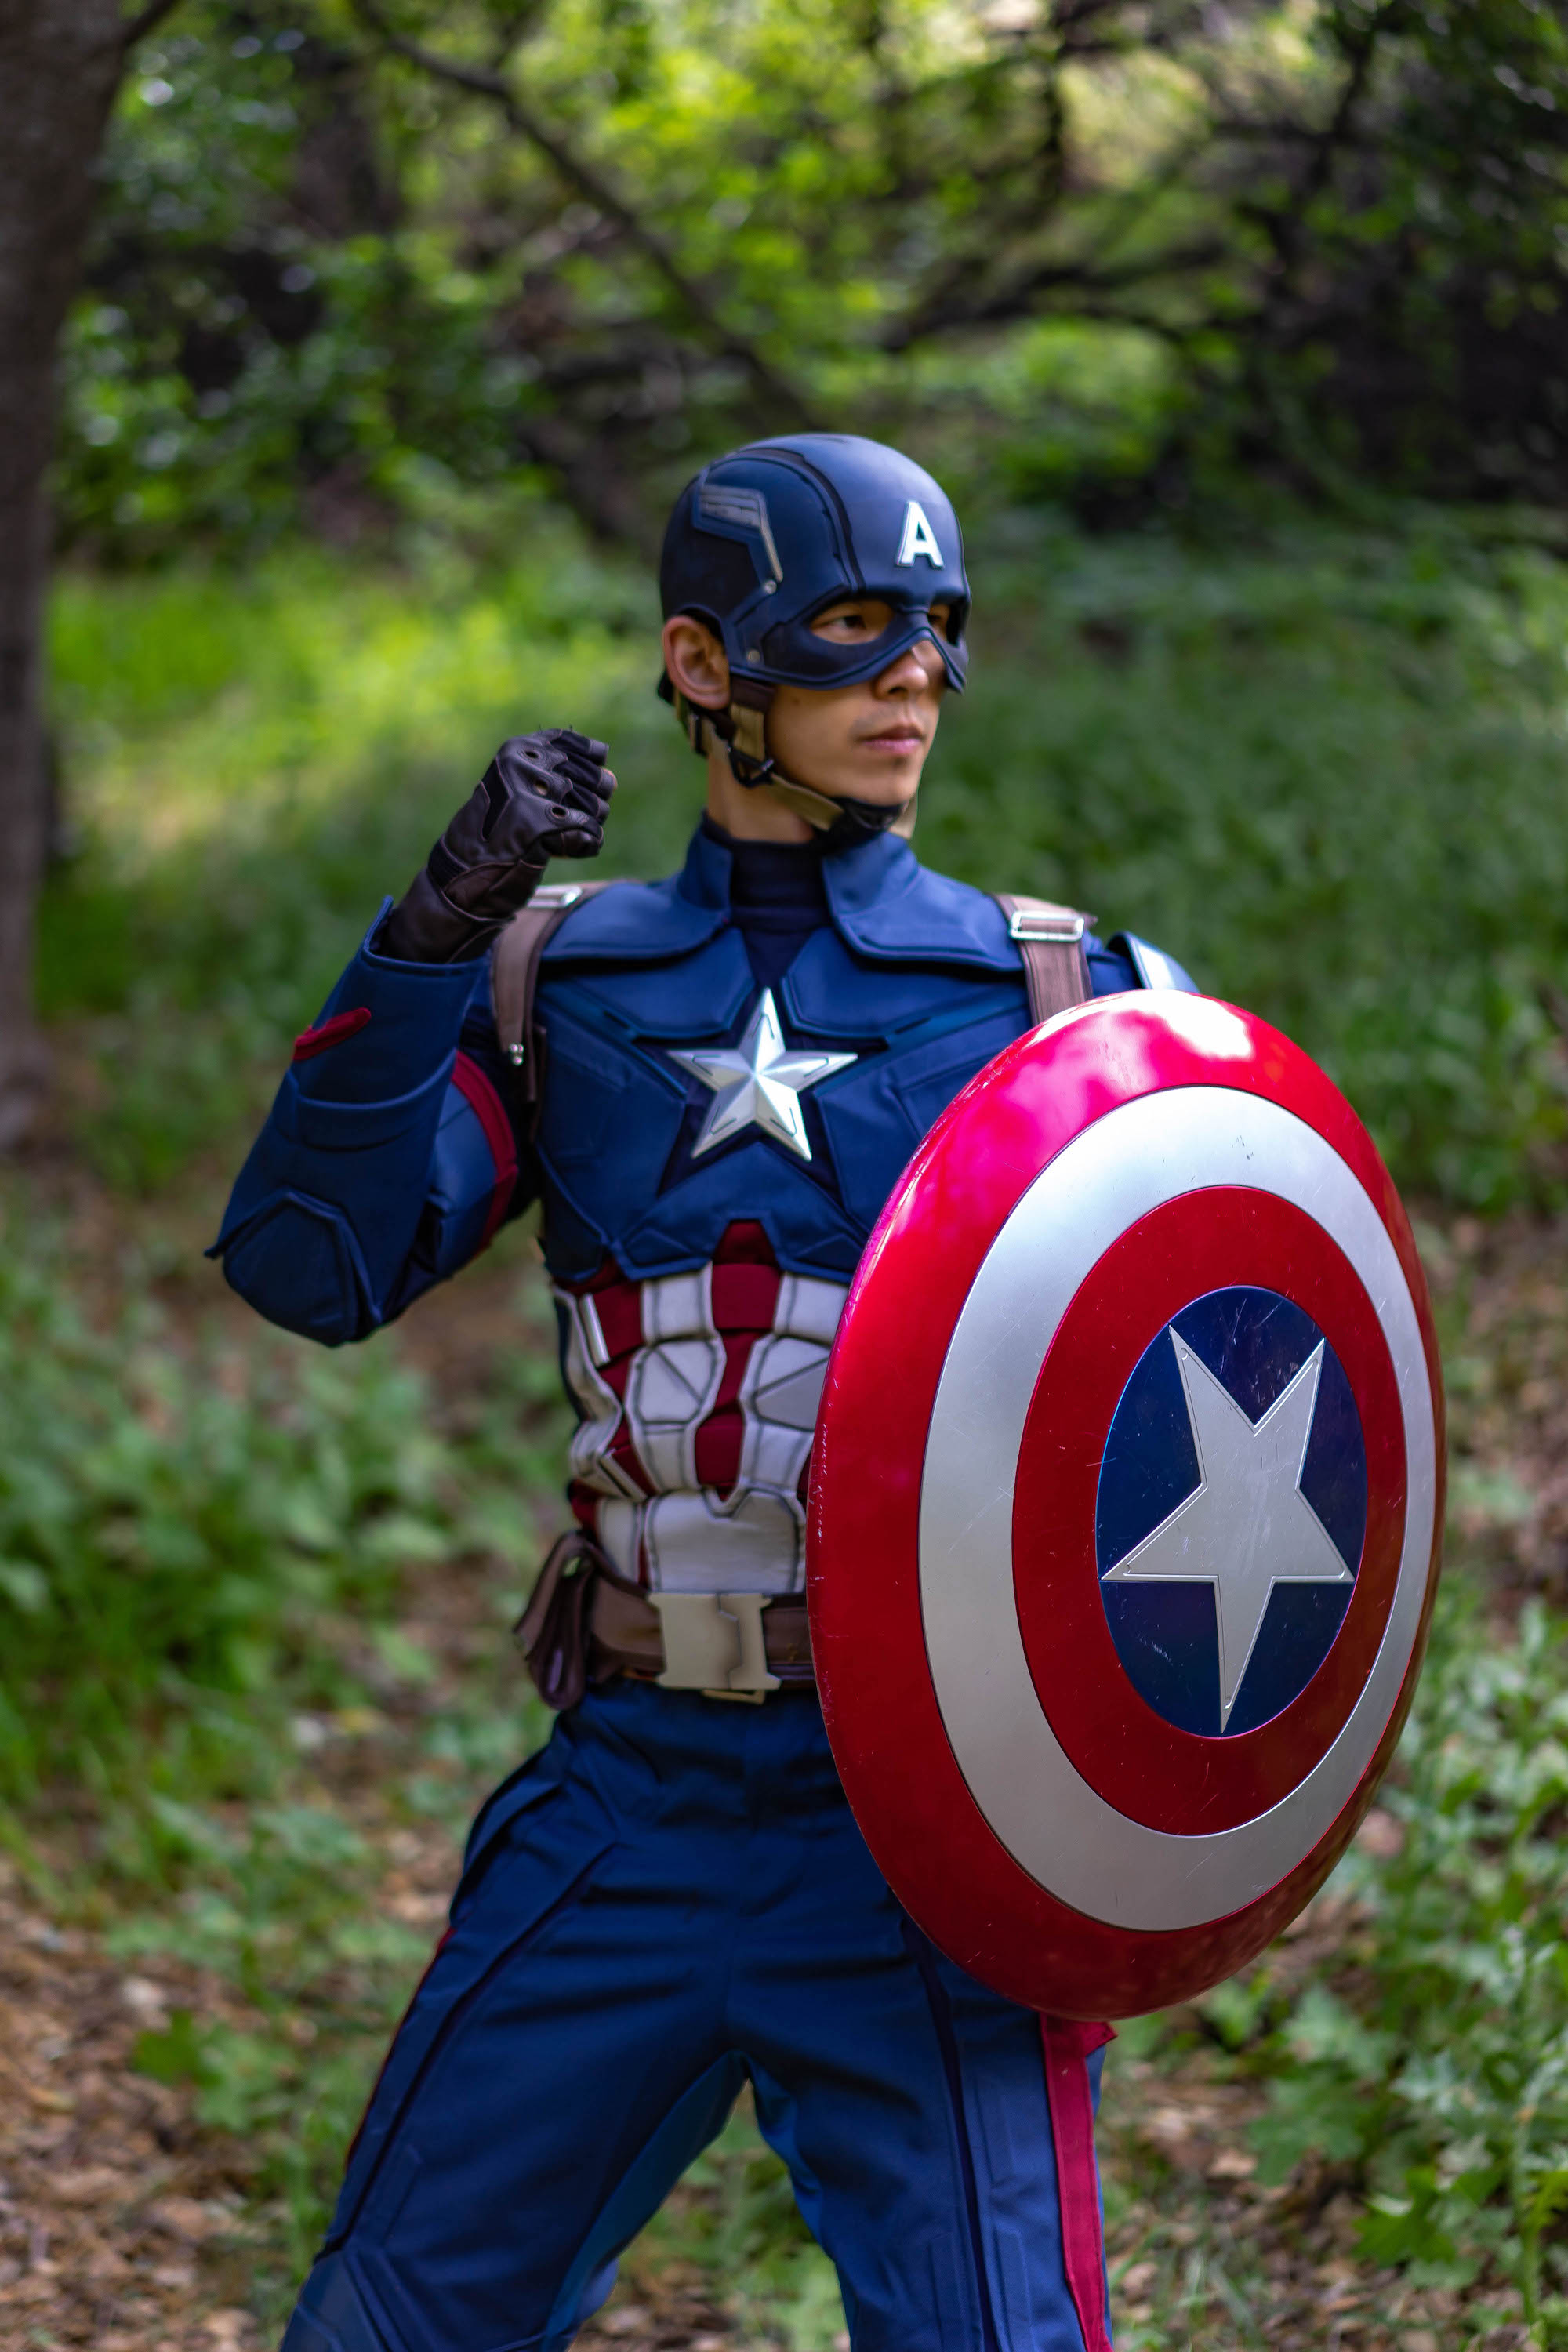 Me as Captain America - Shot by Anthony Chavez ( @thephotochamp )